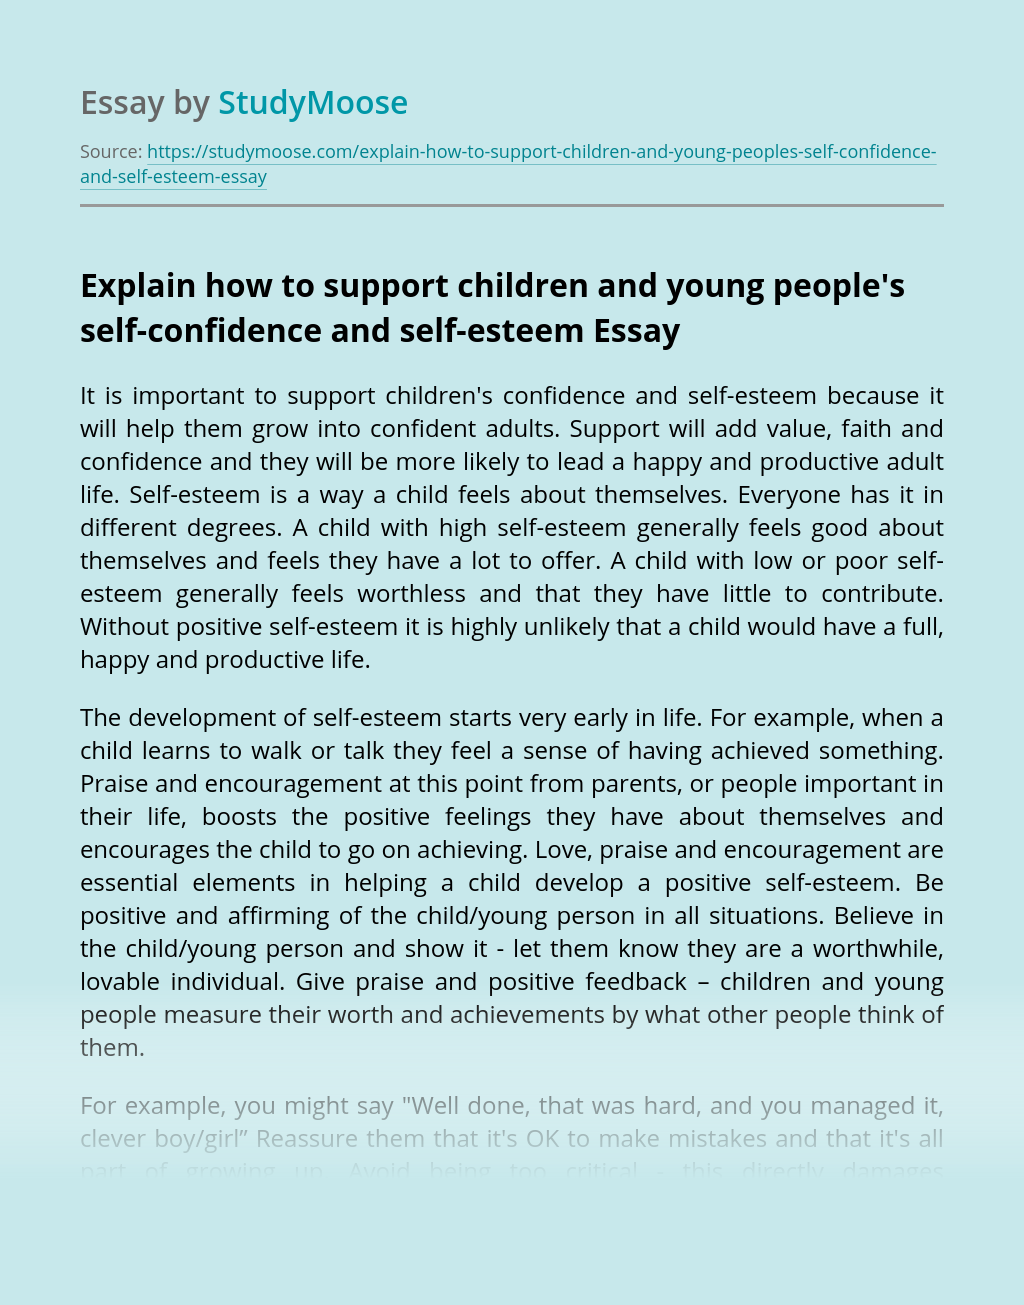 Explain how to support children and young people's self-confidence and self-esteem